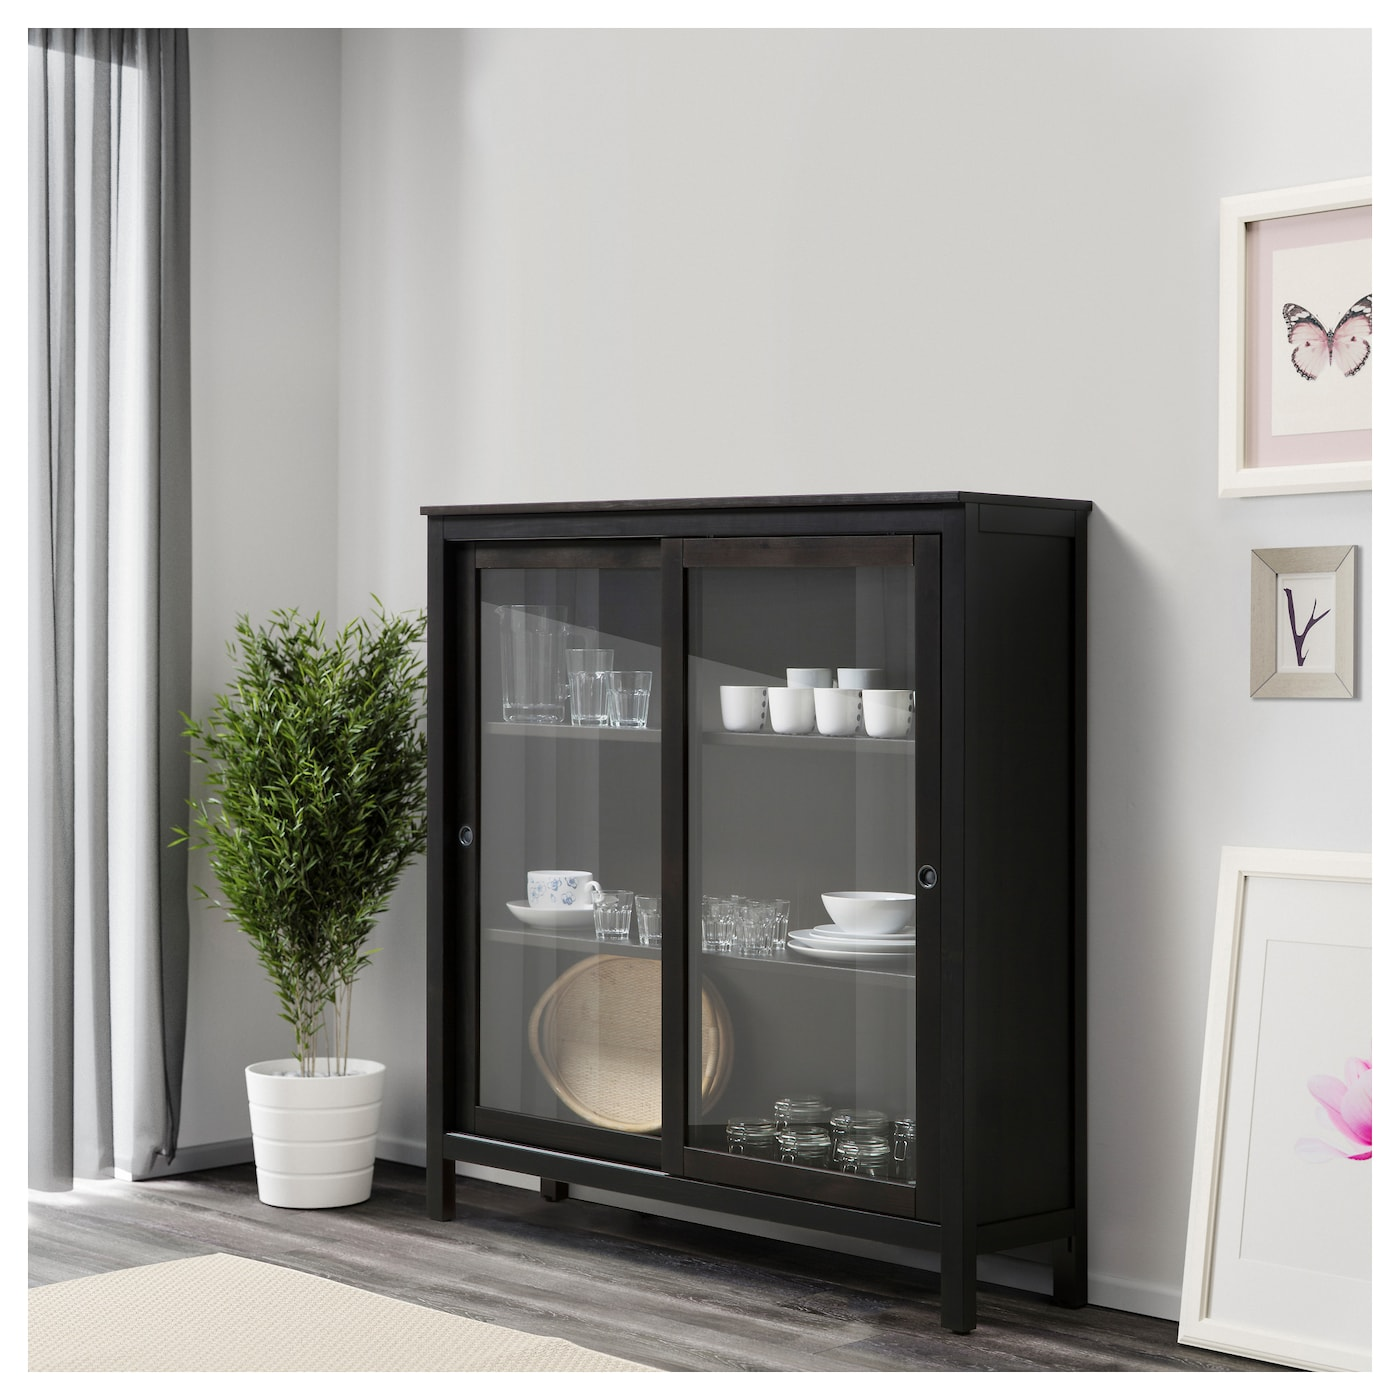 Hemnes glass door cabinet black brown 120x130 cm ikea - Ikea glass cabinets ...